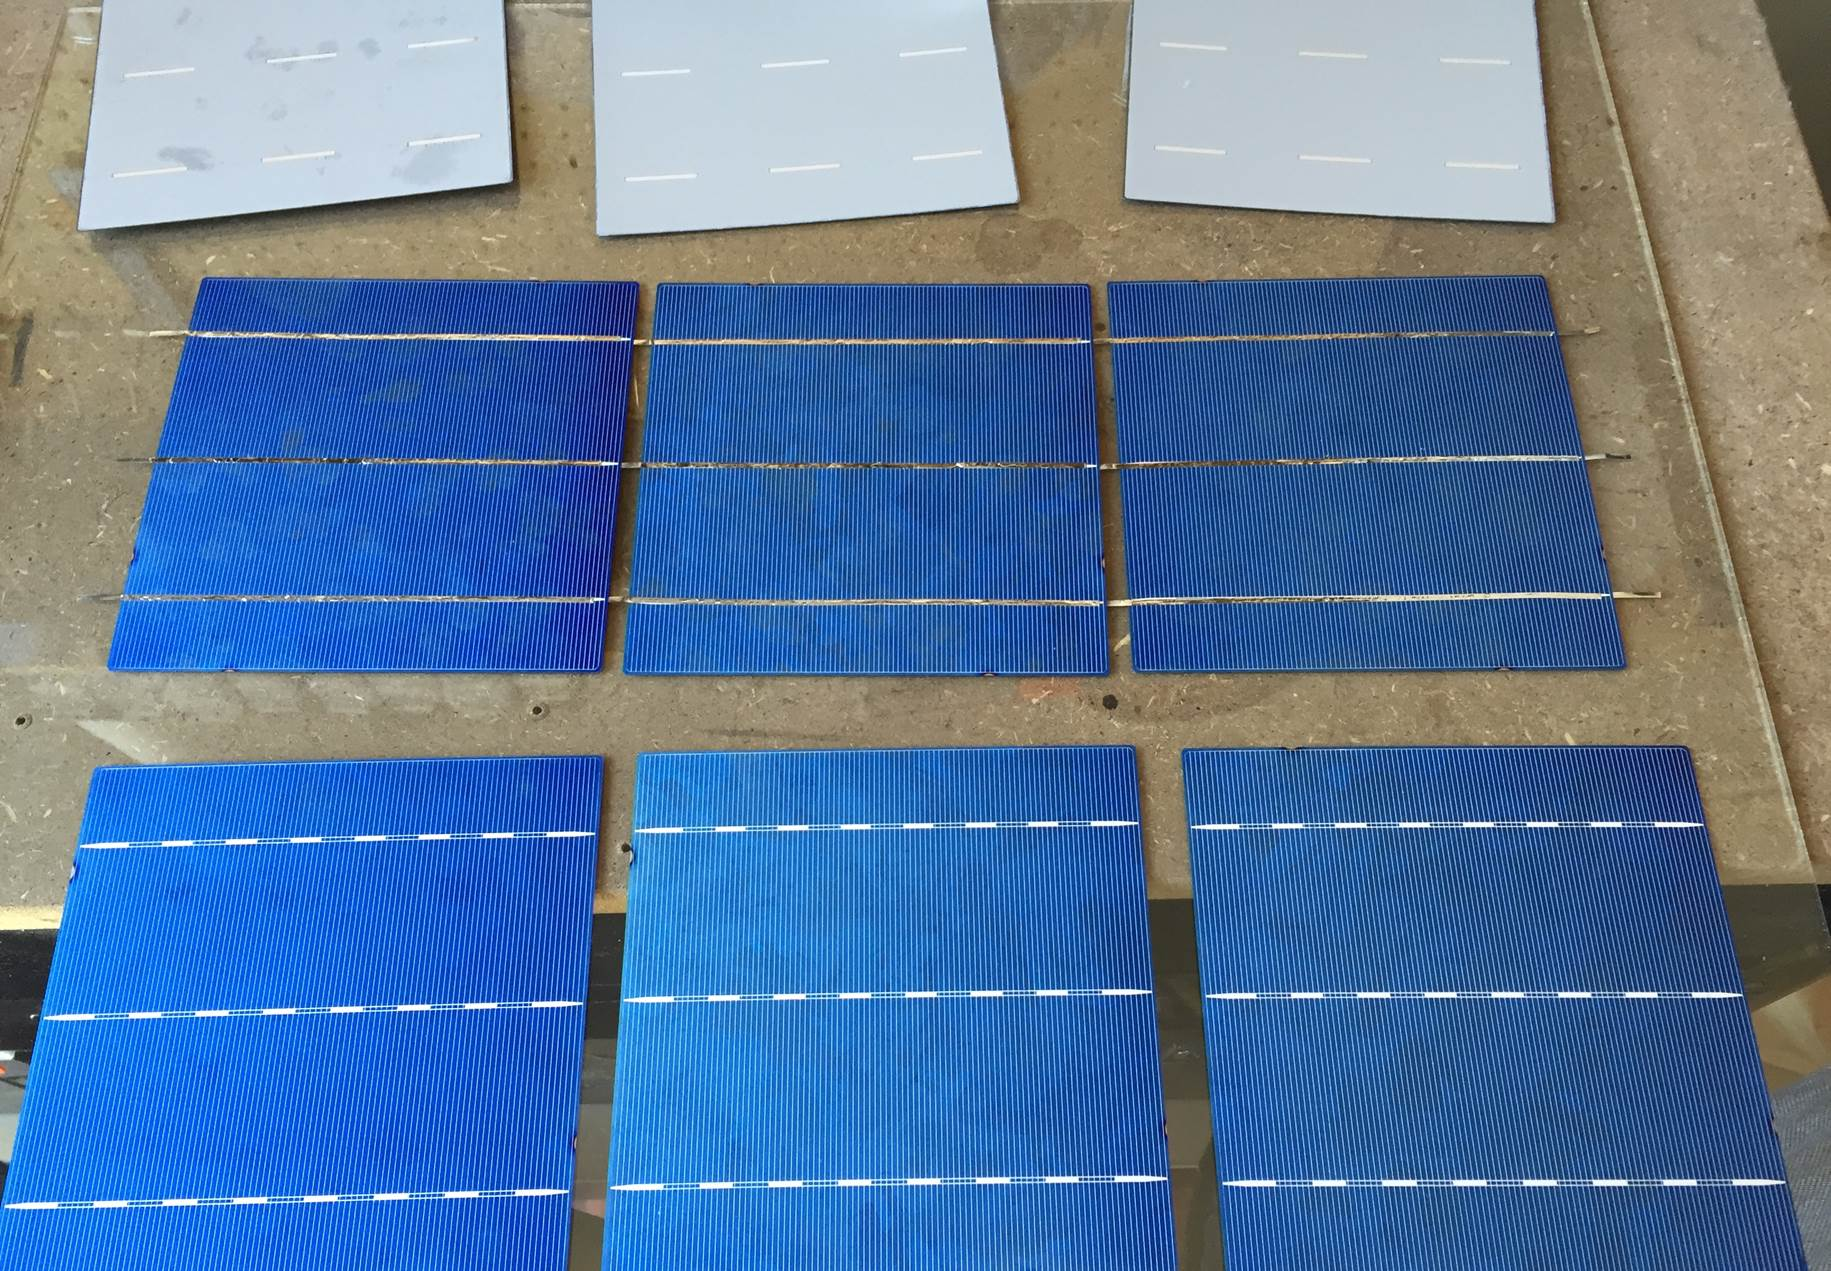 tabbed solar cells